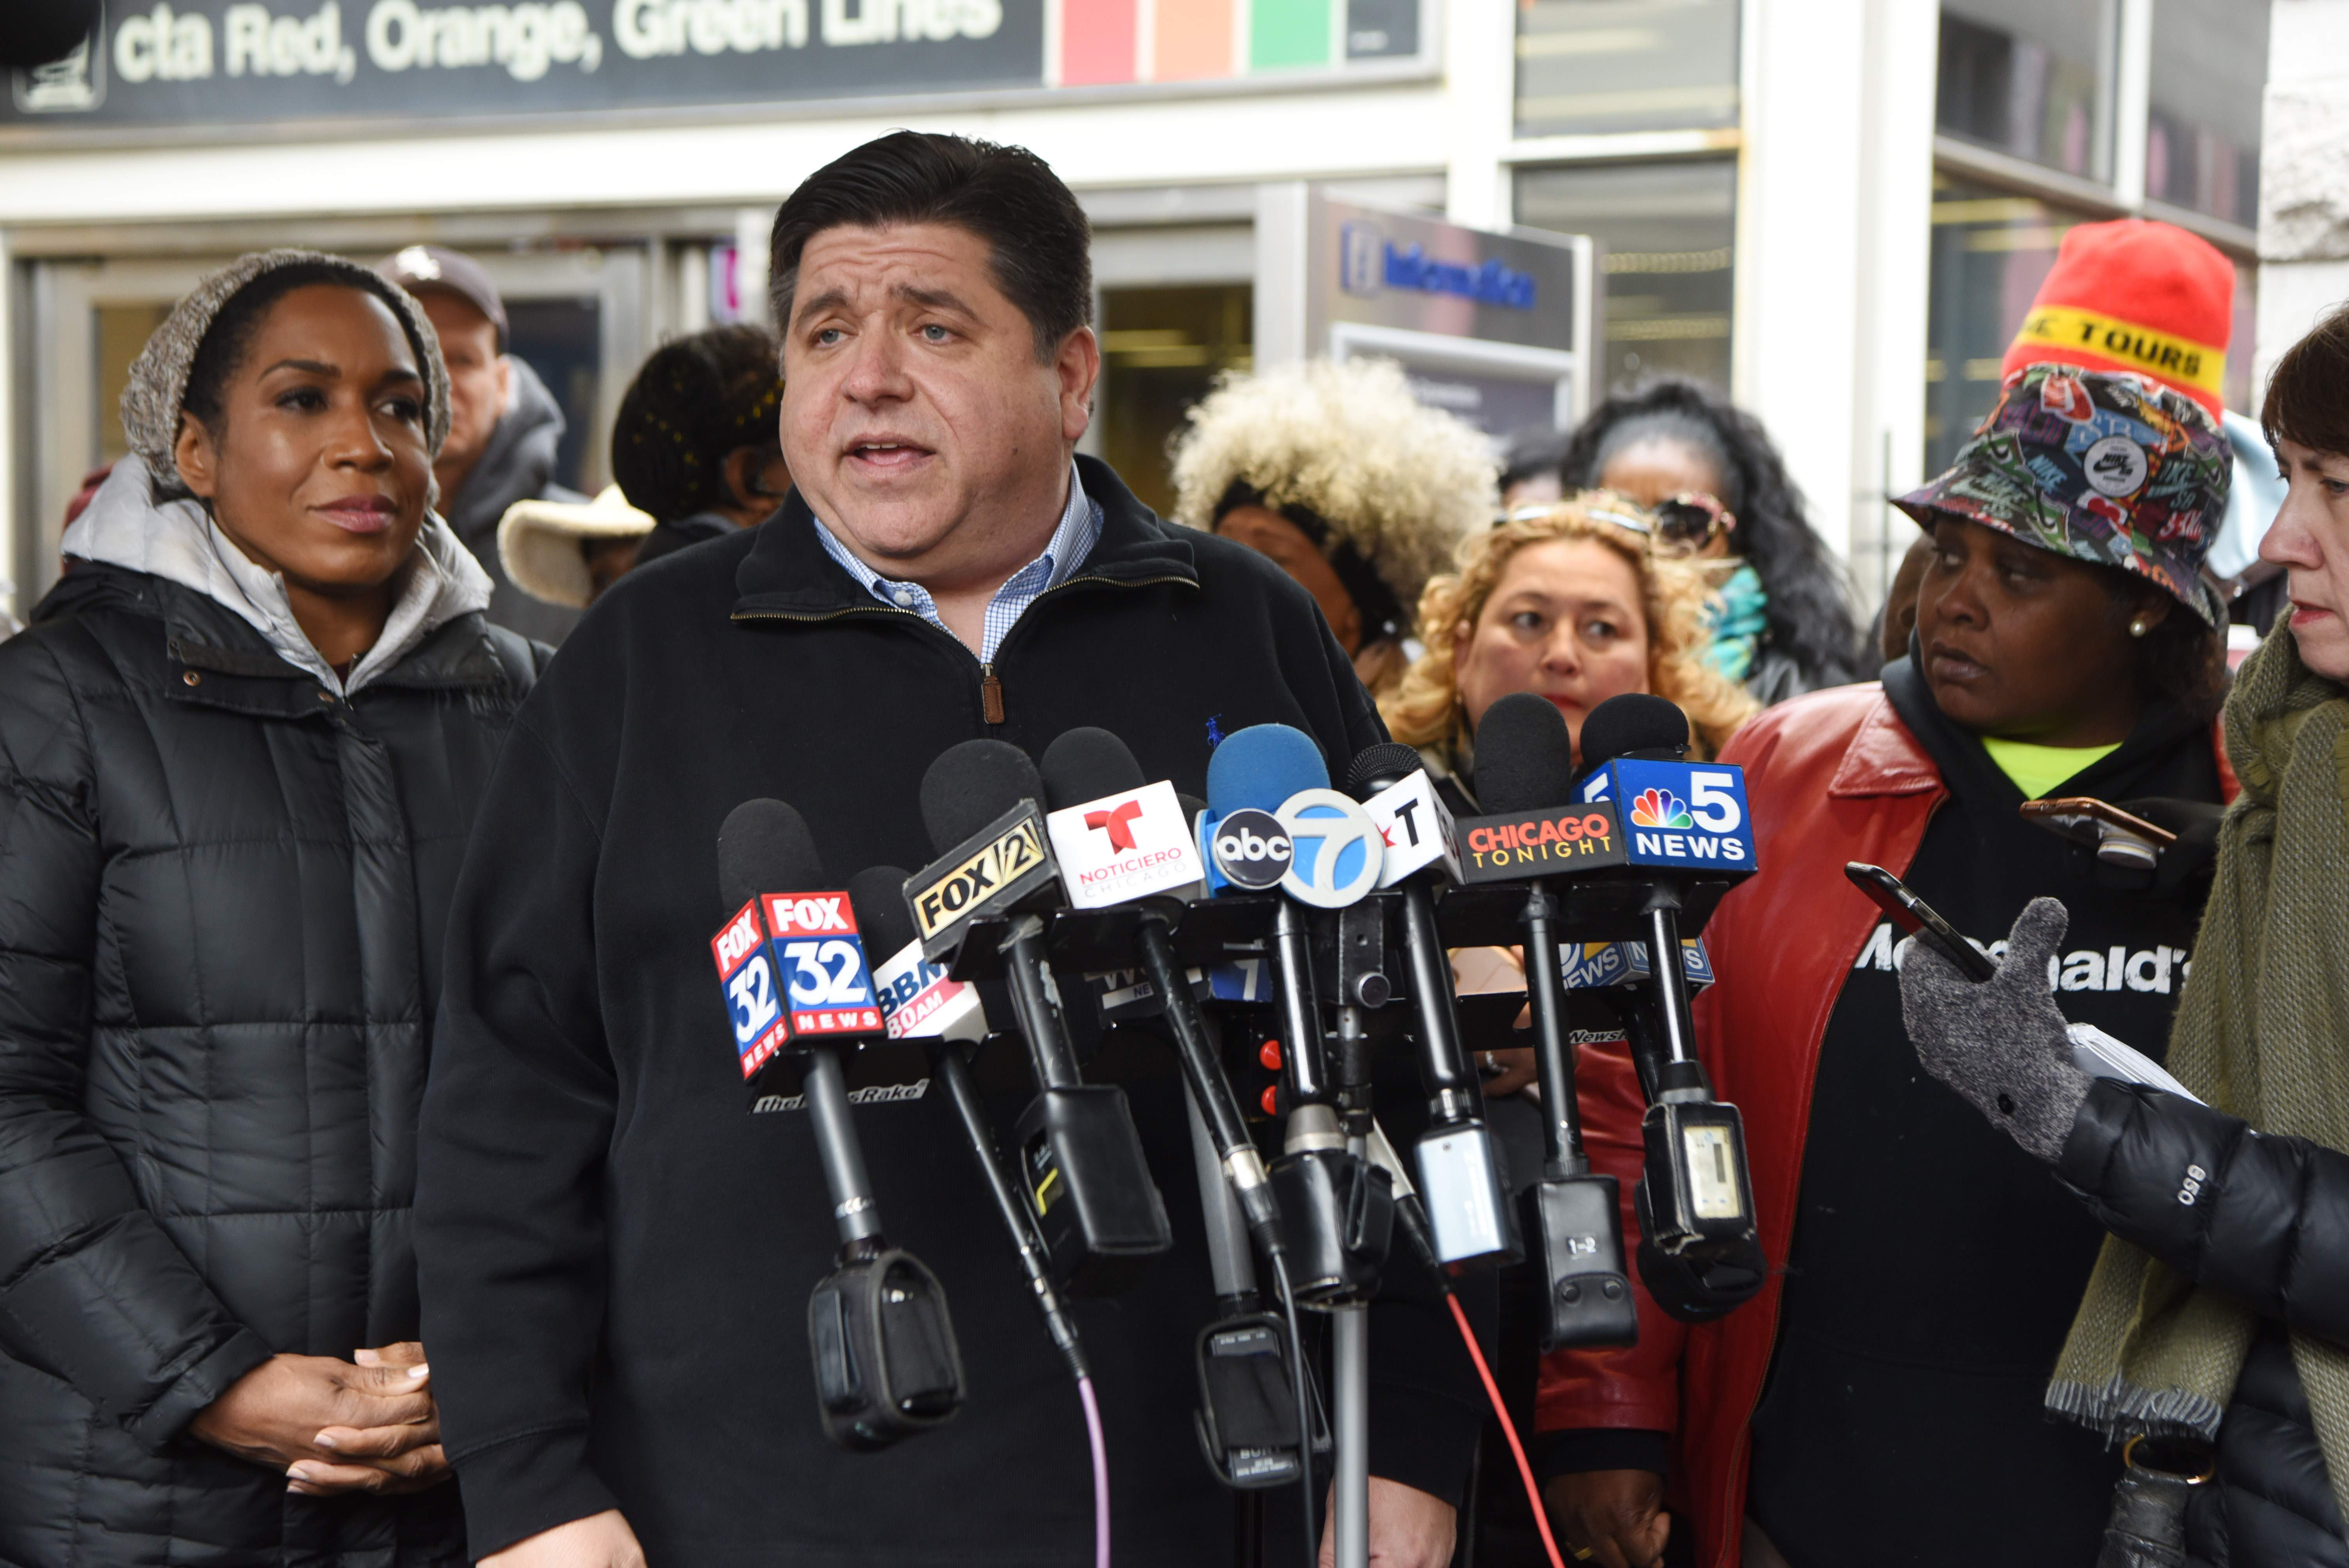 Gov.-elect J.B. Pritzker and lt. gov.-elect Juliana Stratton, left, speak to the media and greet supporters in Chicago.